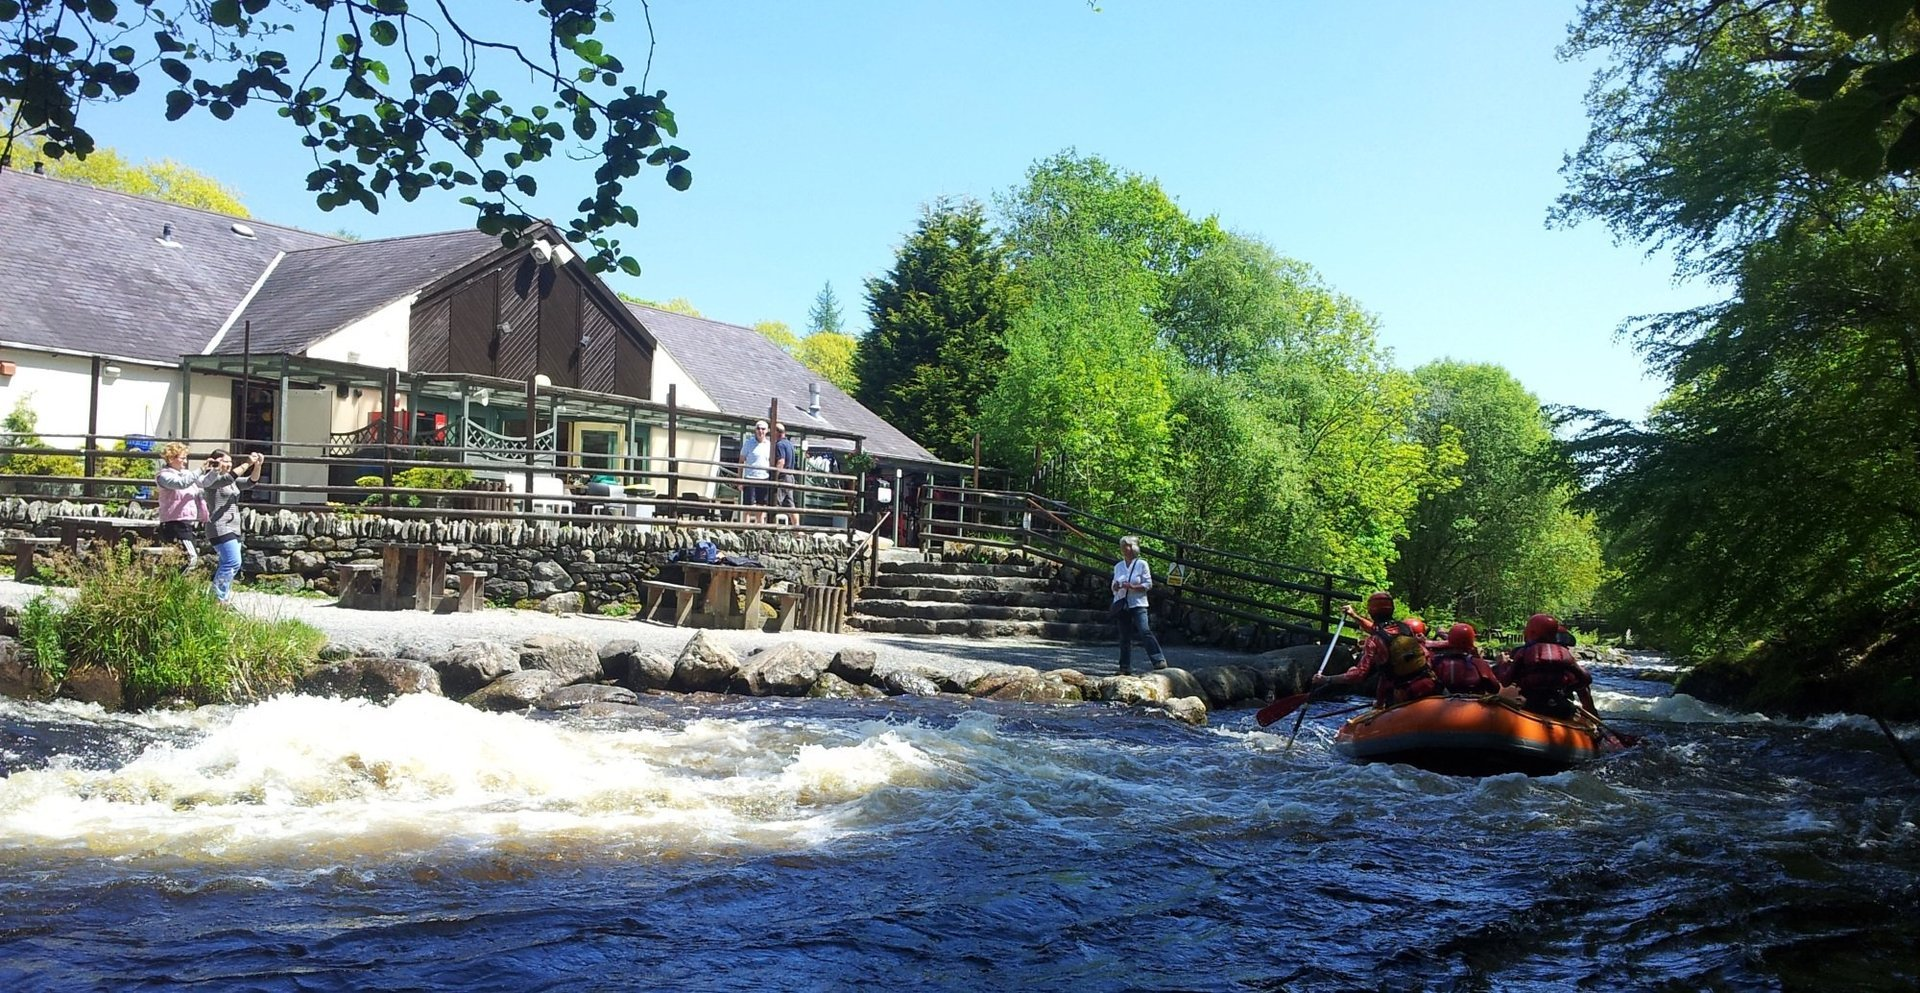 Whitewater rafting in Bala, north Wales